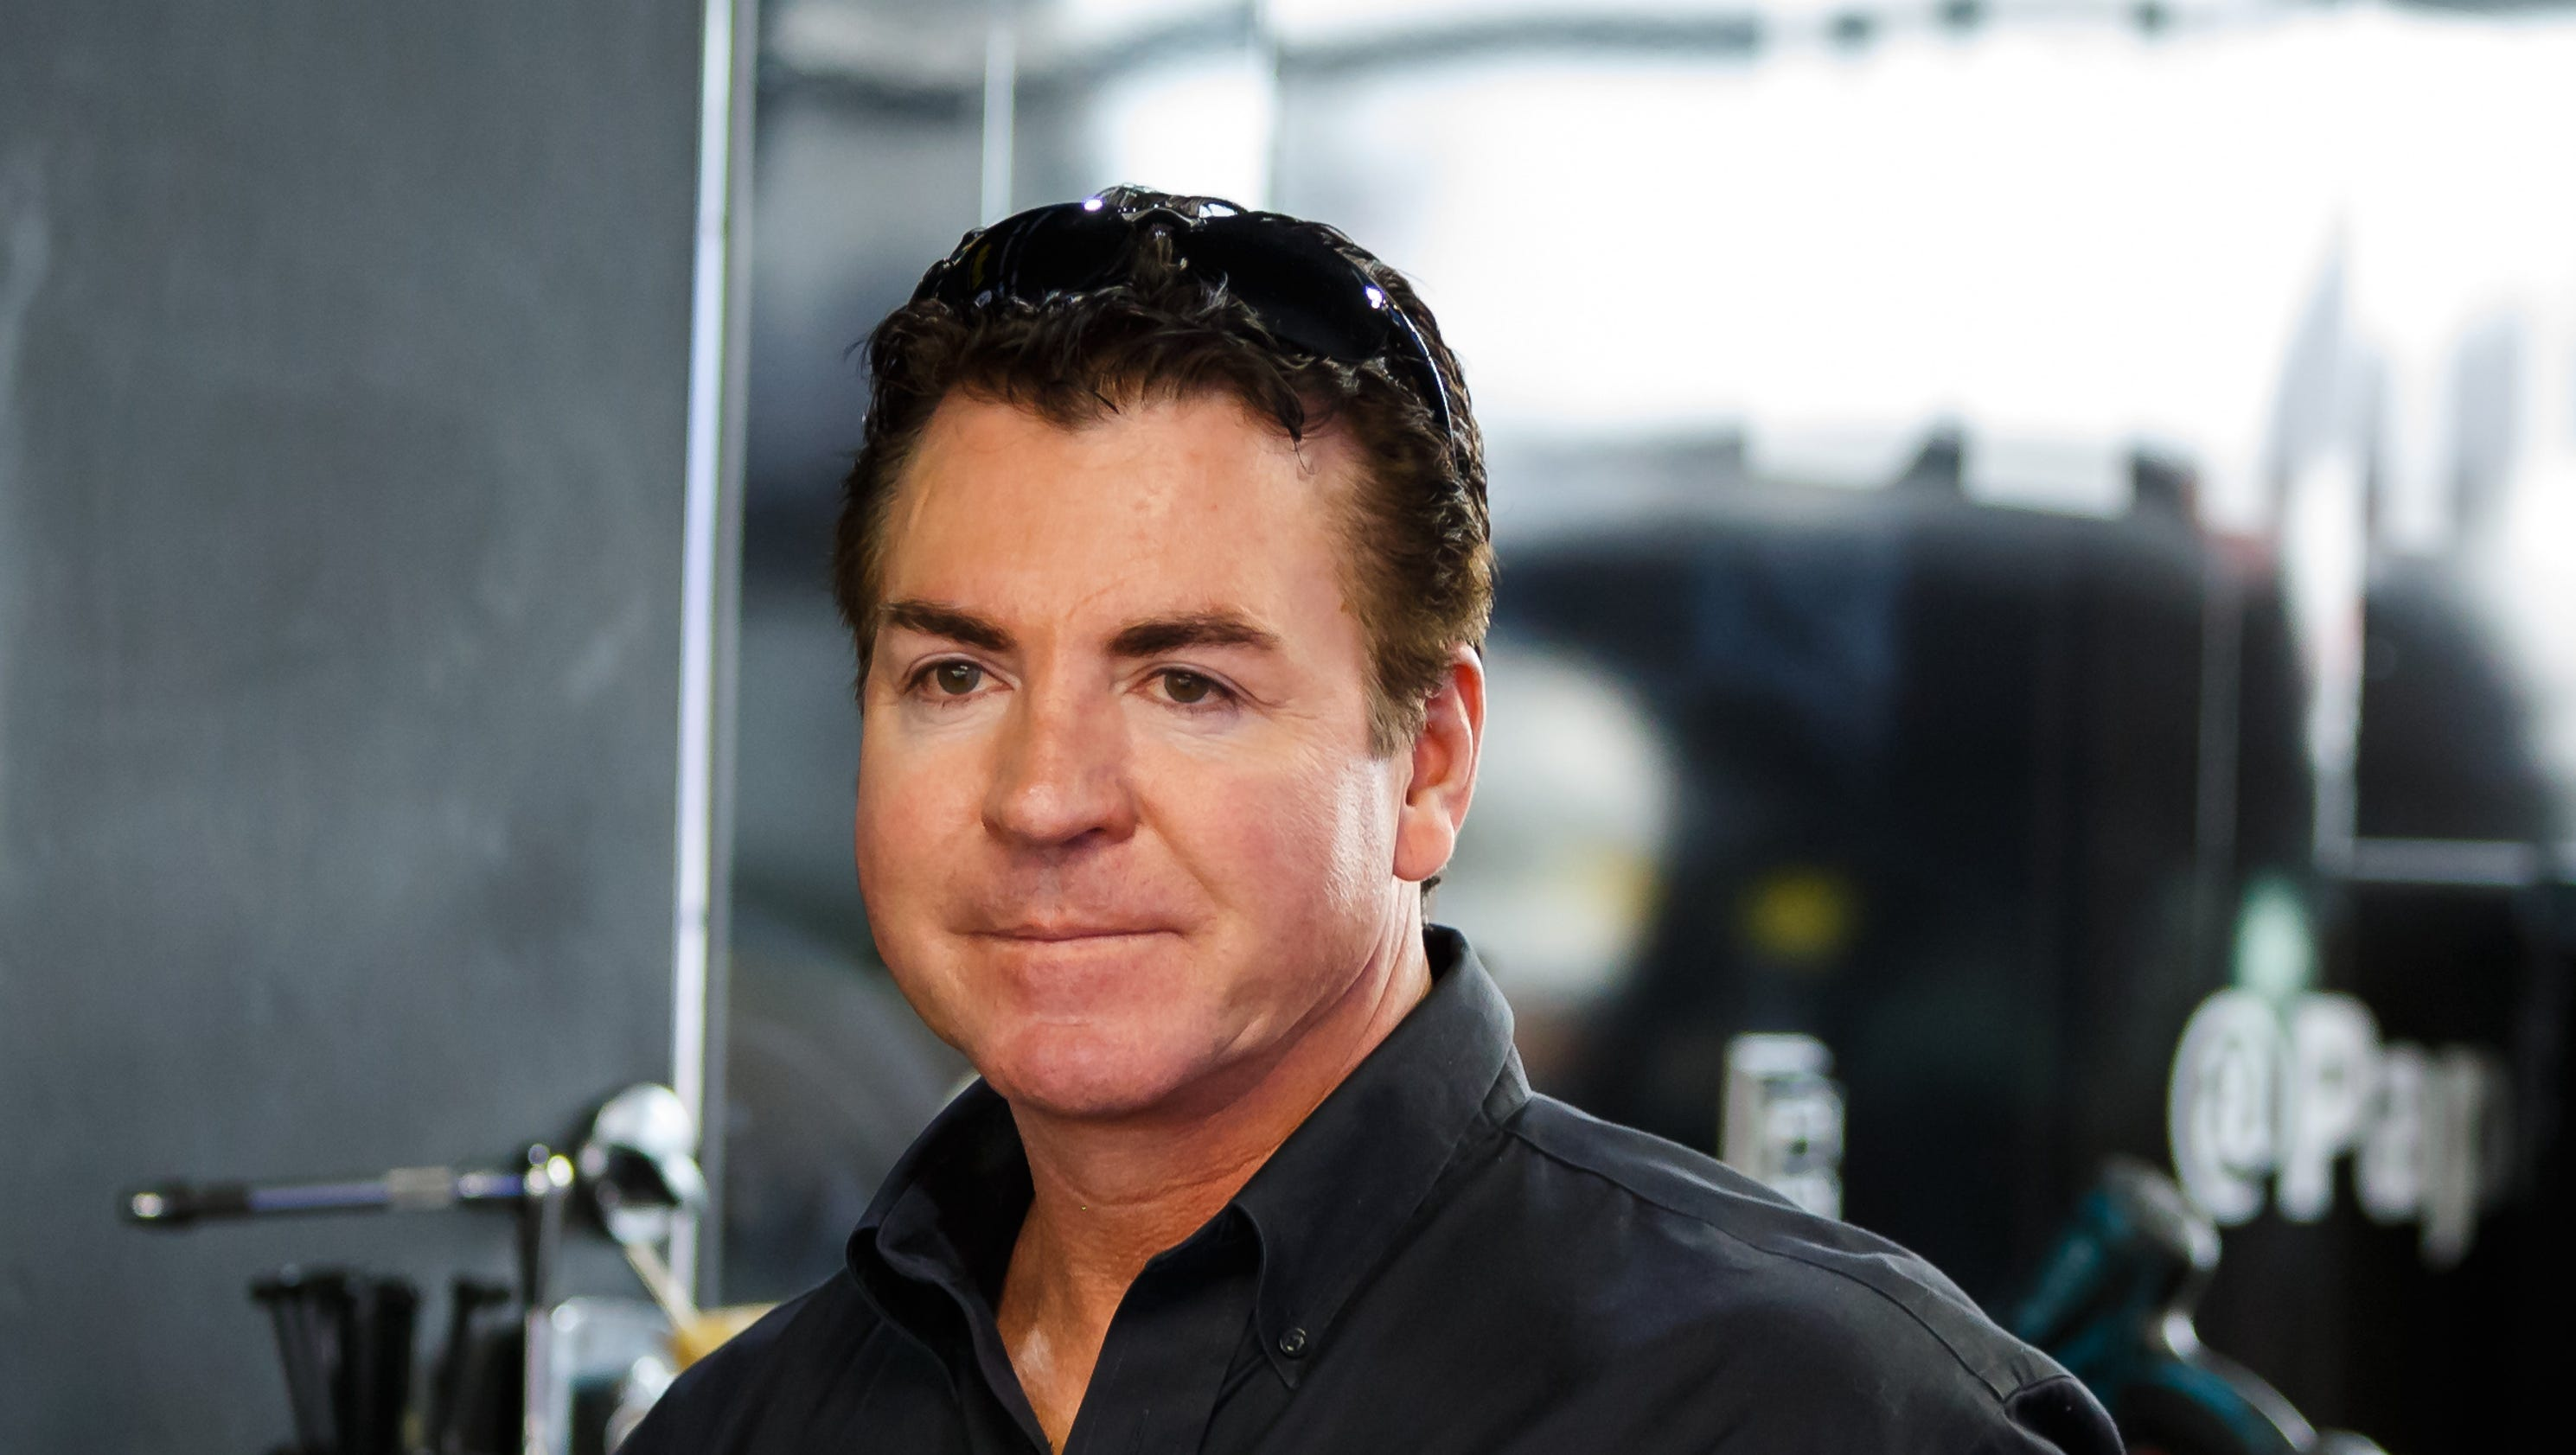 Jul 12,  · (Reuters) - Pizza chain Papa John's International Inc (PZZA.O) said on Wednesday its founder and former chief executive, John Schnatter, resigned as chairman of the board.